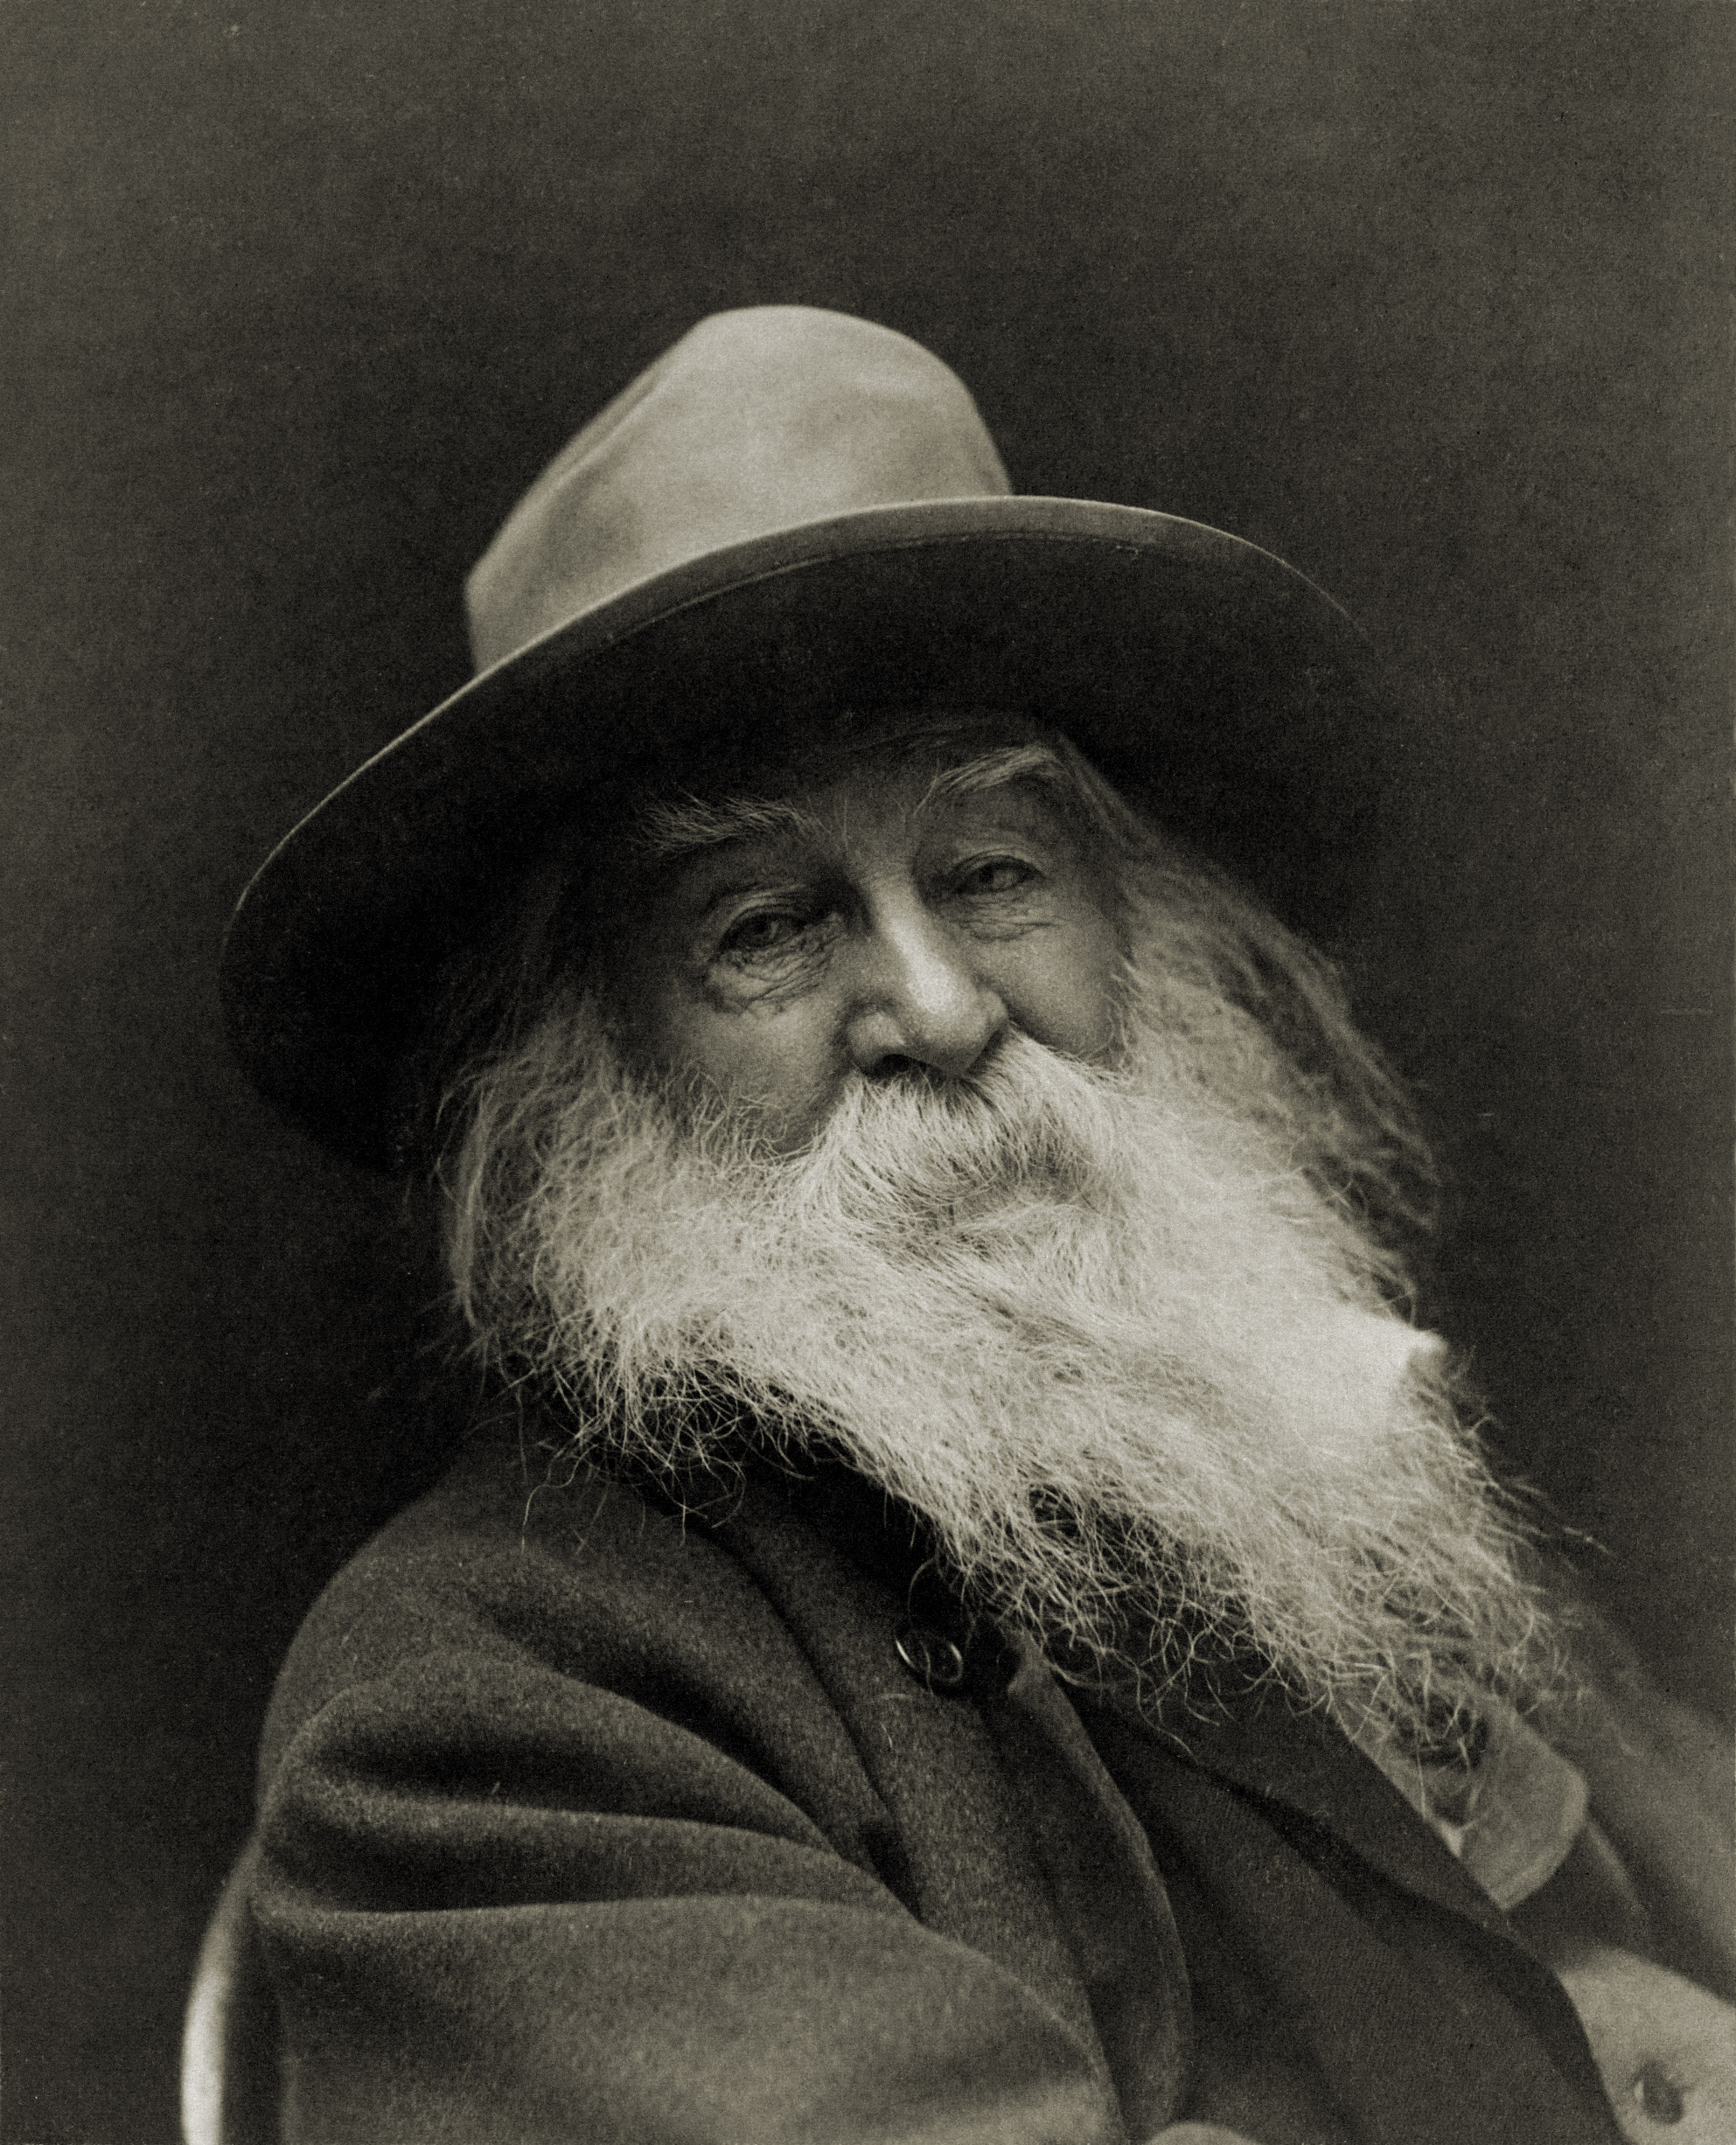 an introduction to the life of walt whitman Essays and criticism on walt whitman - whitman, walt  introduction   throughout his life and work, whitman promoted himself as the poet of american .